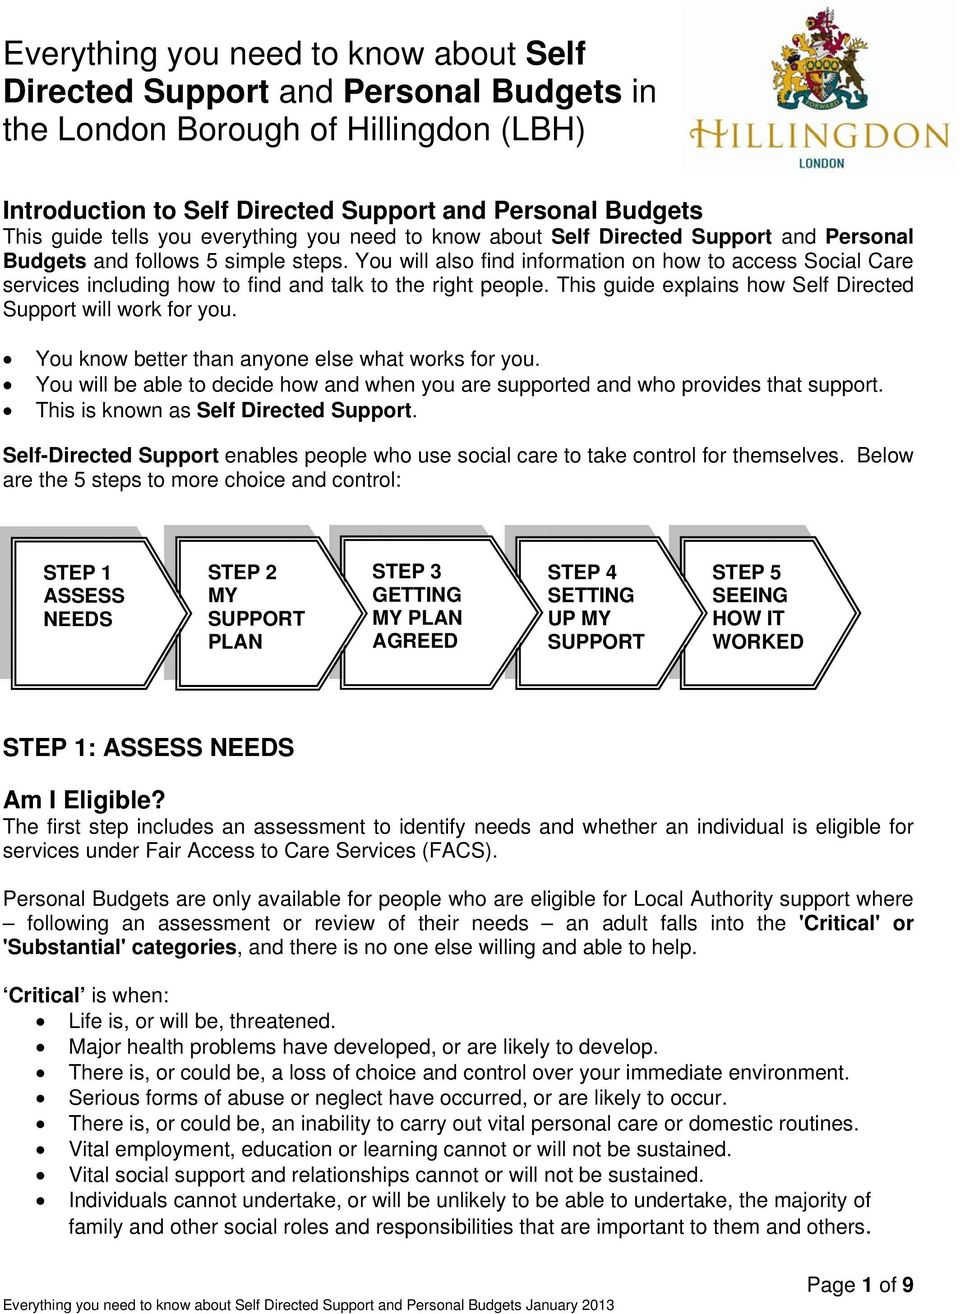 You will also find information on how to access Social Care services including how to find and talk to the right people. This guide explains how Self Directed Support will work for you.